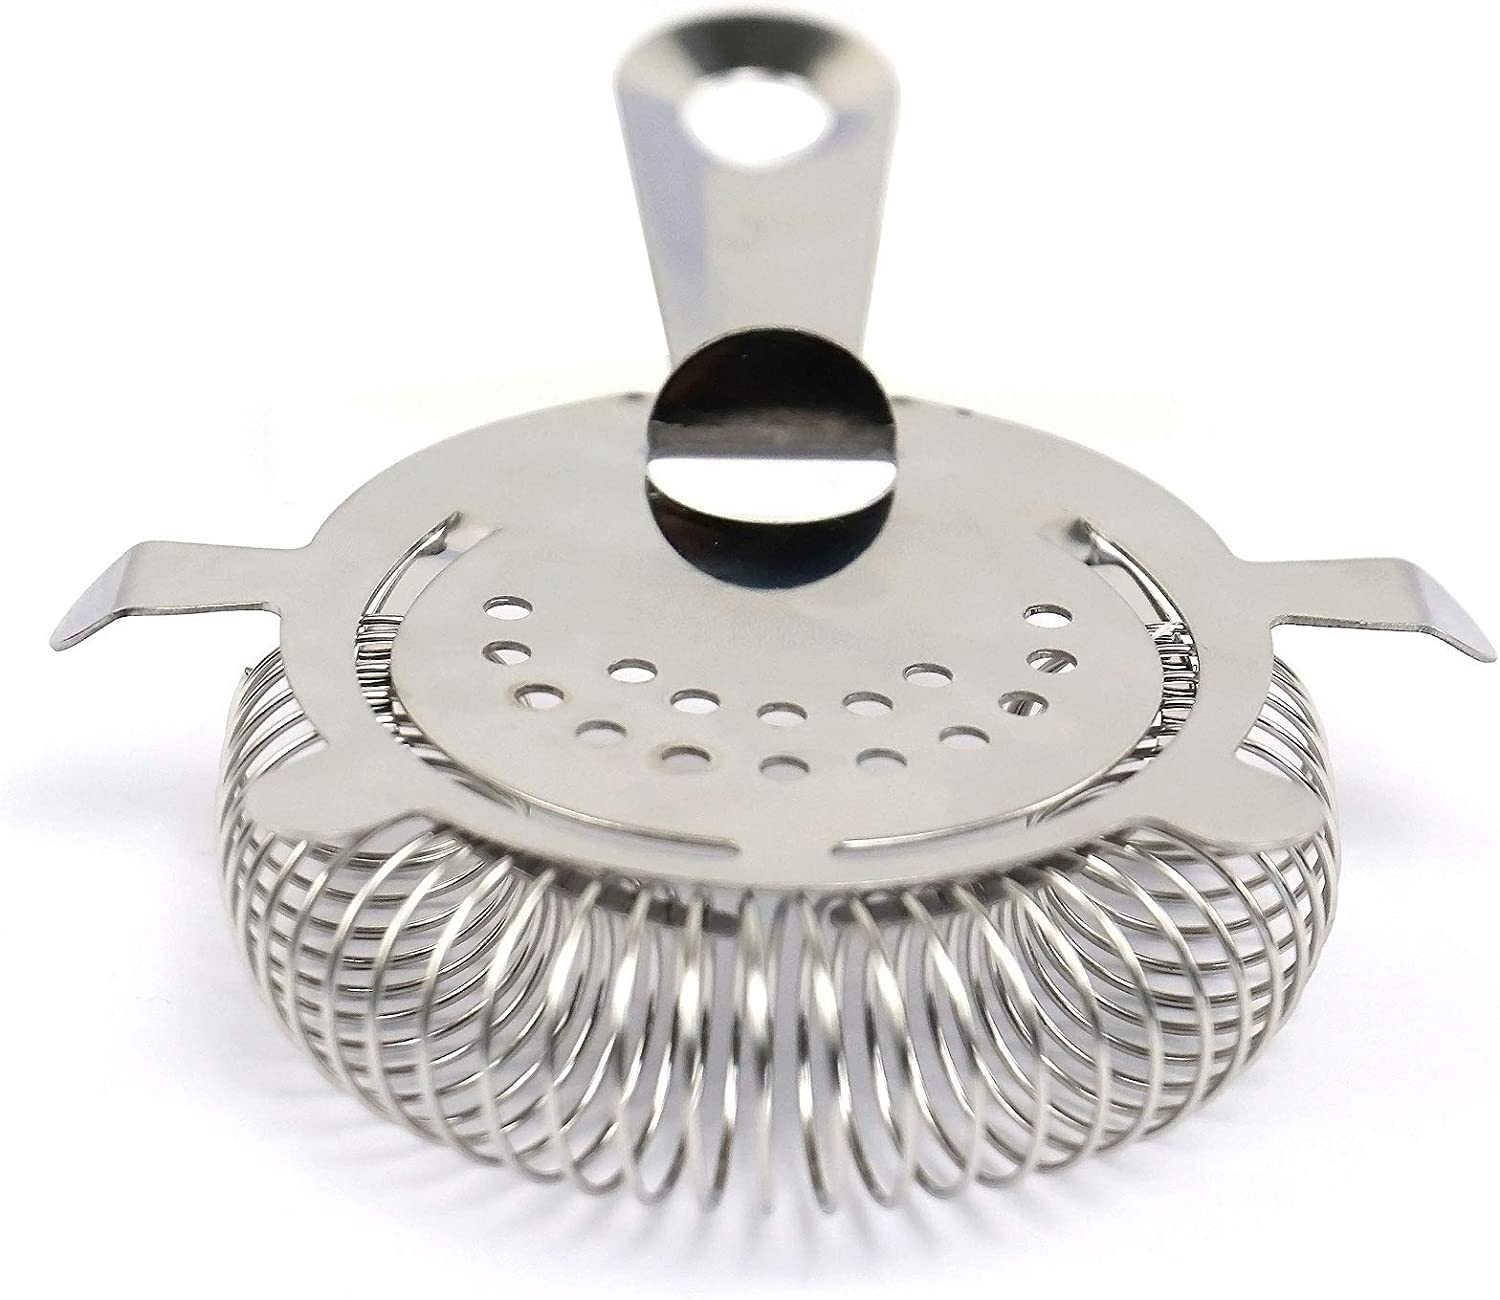 2PCS Cocktail Strainer 4 Prong Stainless Steel Bartender Strainers Ice Colander Filter Bar Accessories Tools